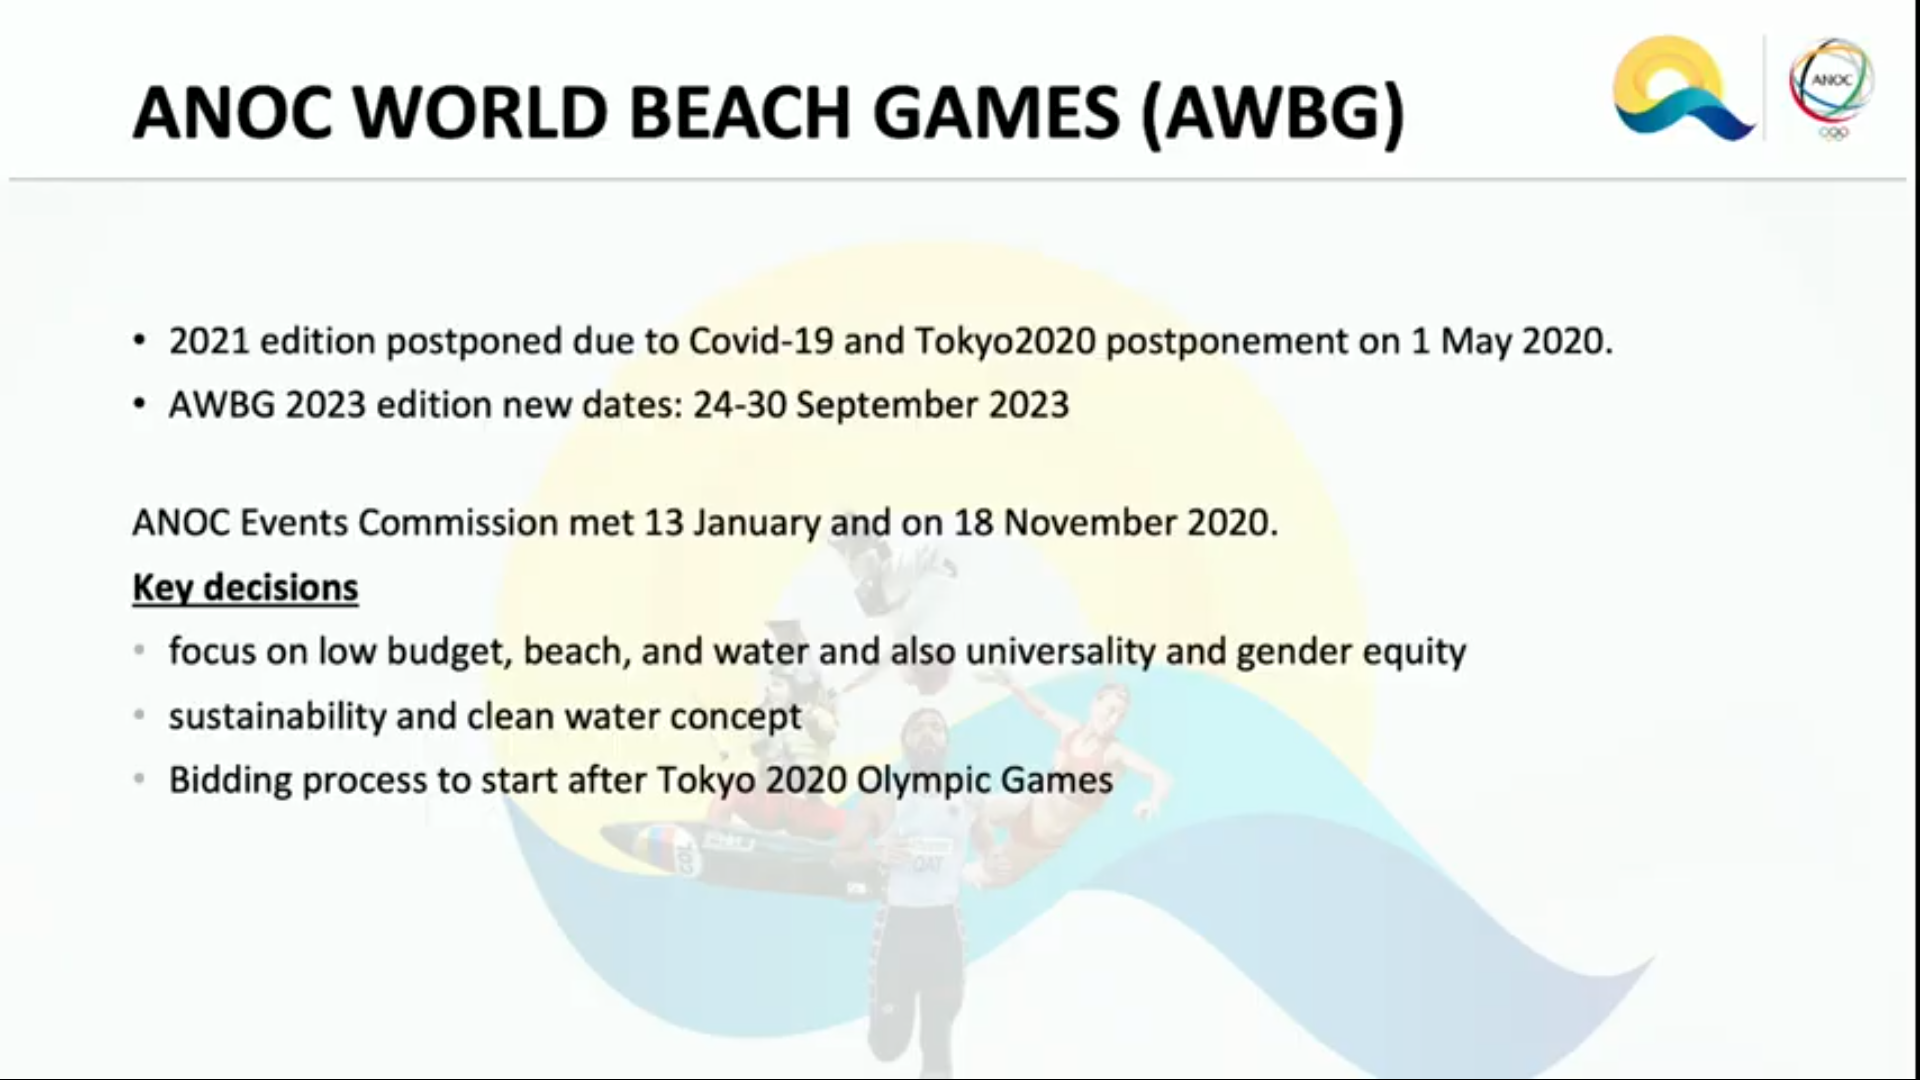 ANOC has set dates for the 2023 ANOC World Beach Games ©ANOC